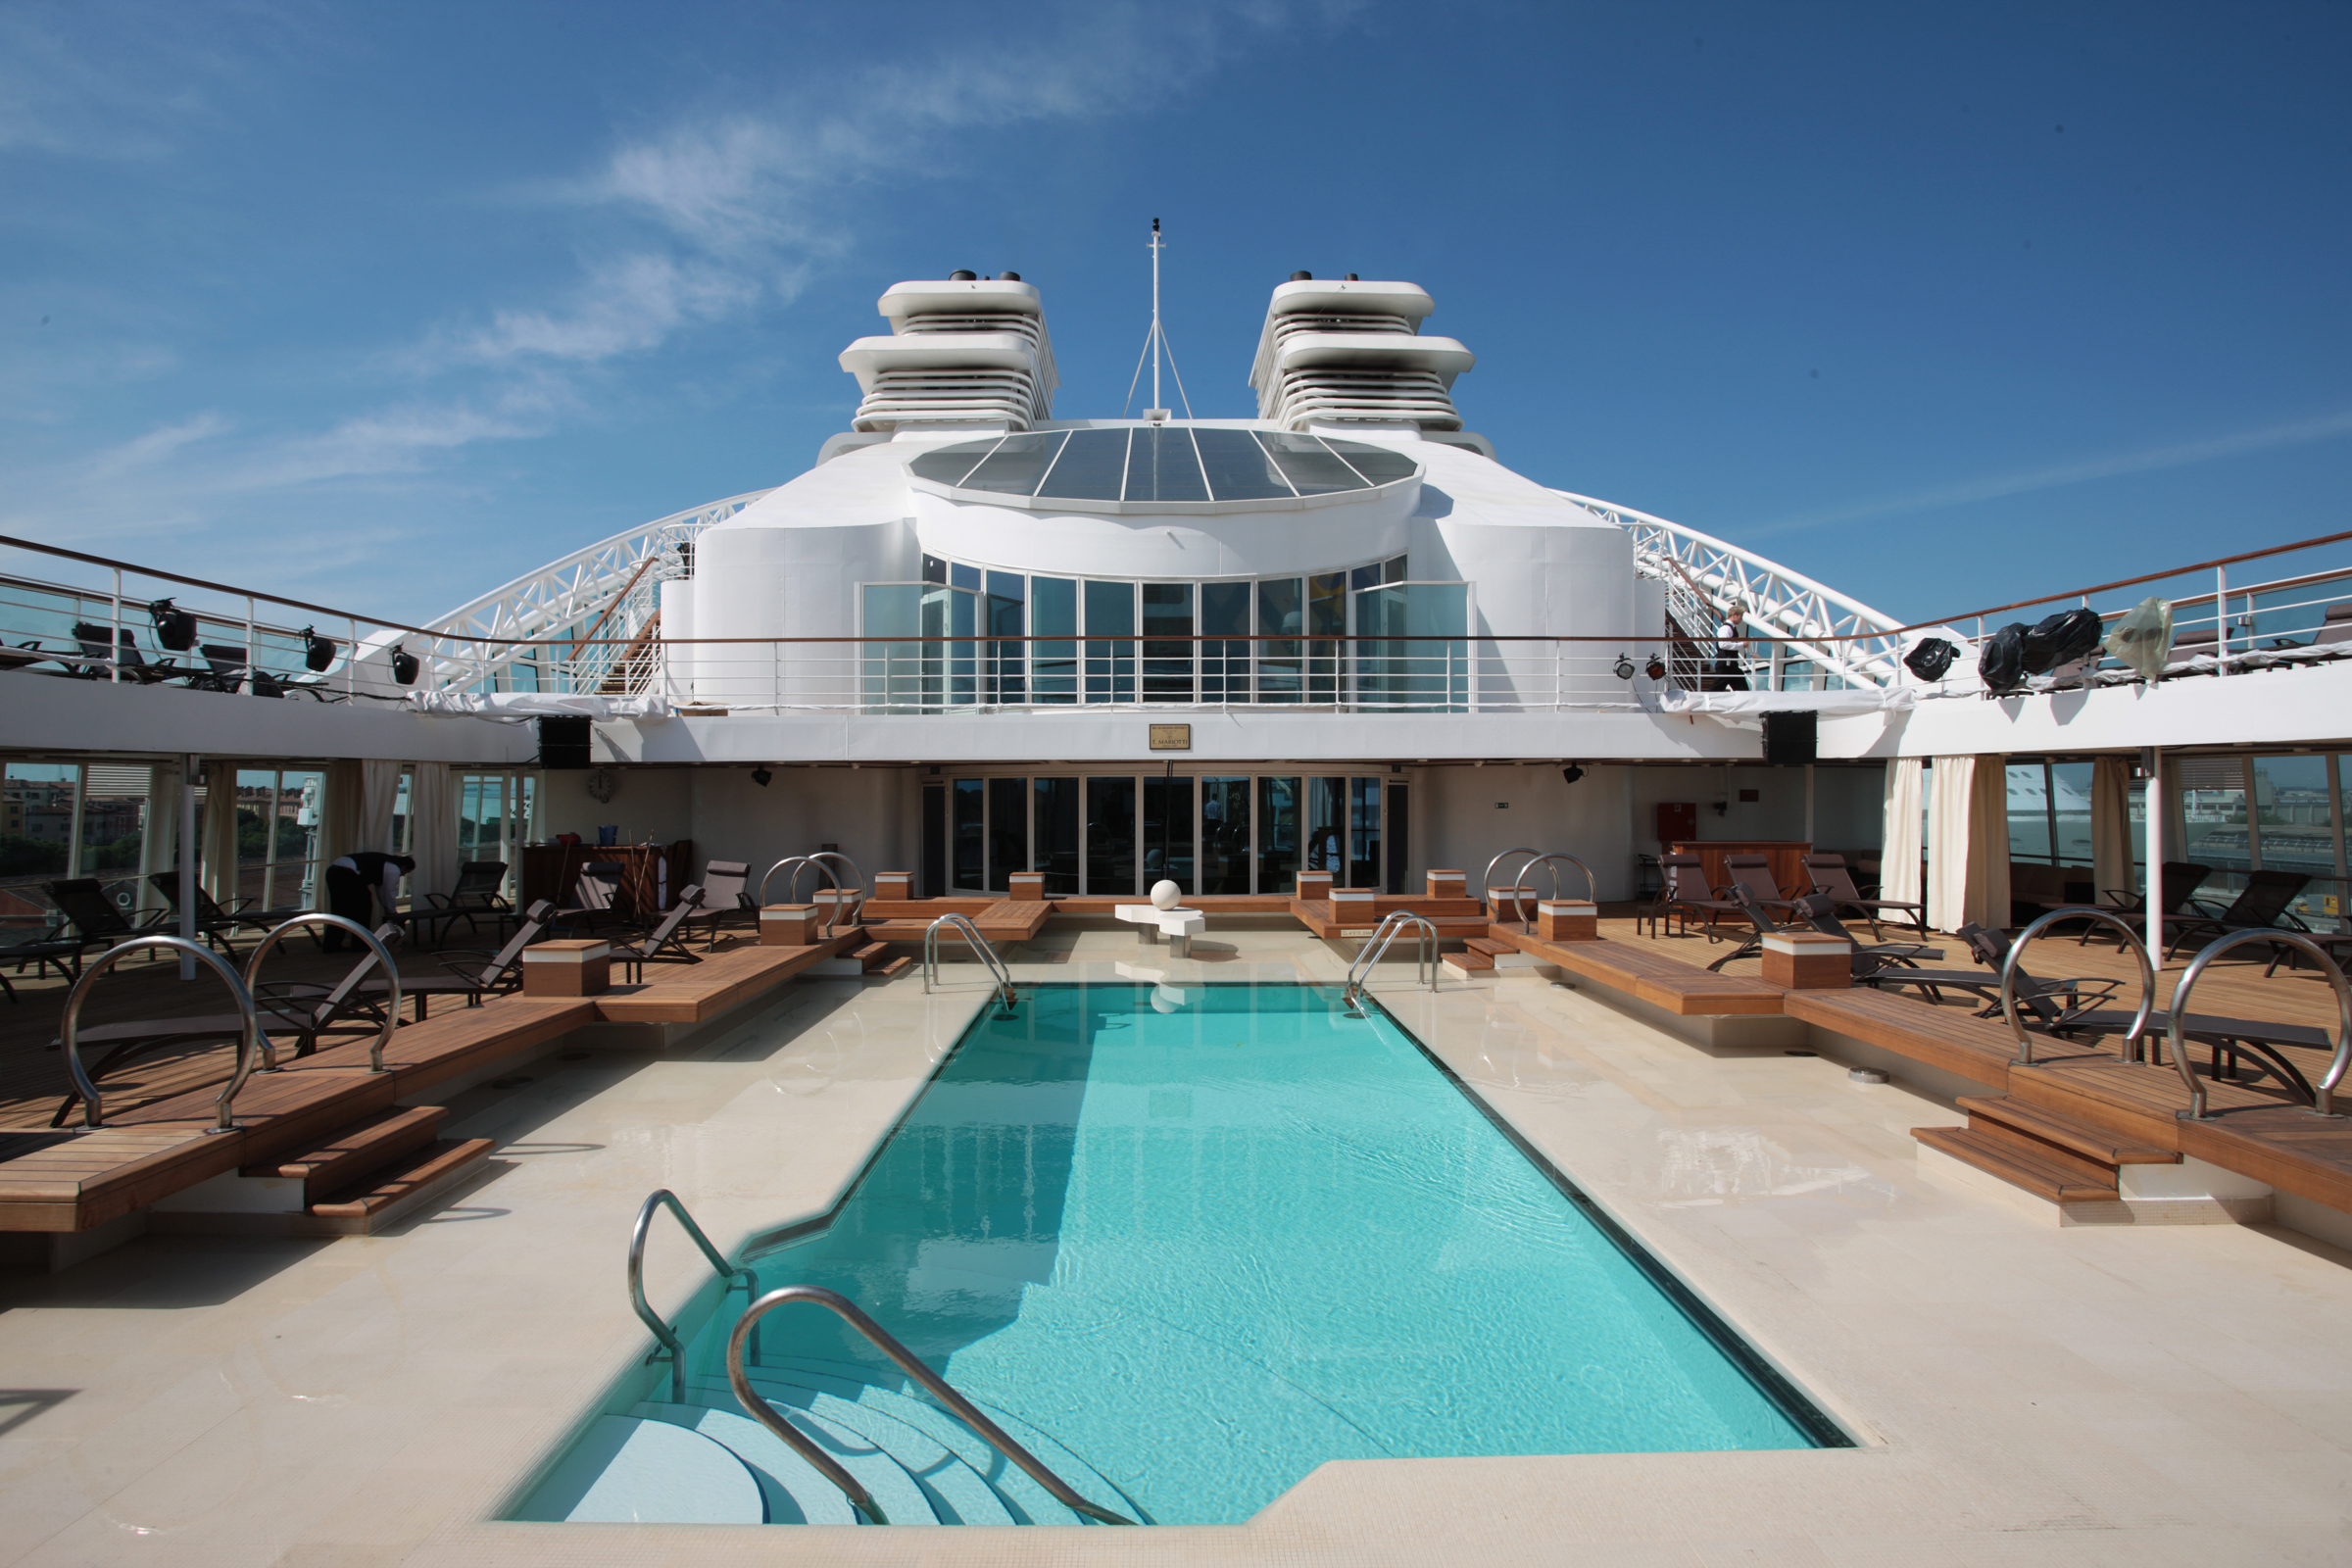 Pool Deck-Seabourn